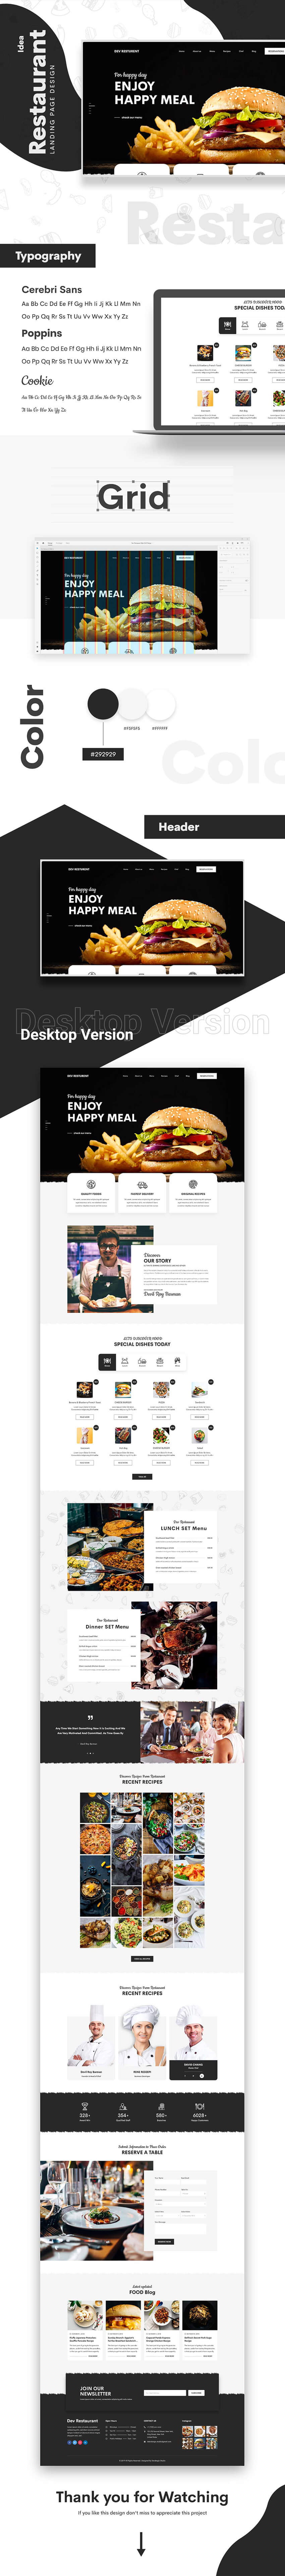 Clean Bistro Web Design - Restaurant Adobe Xd Concept for Free